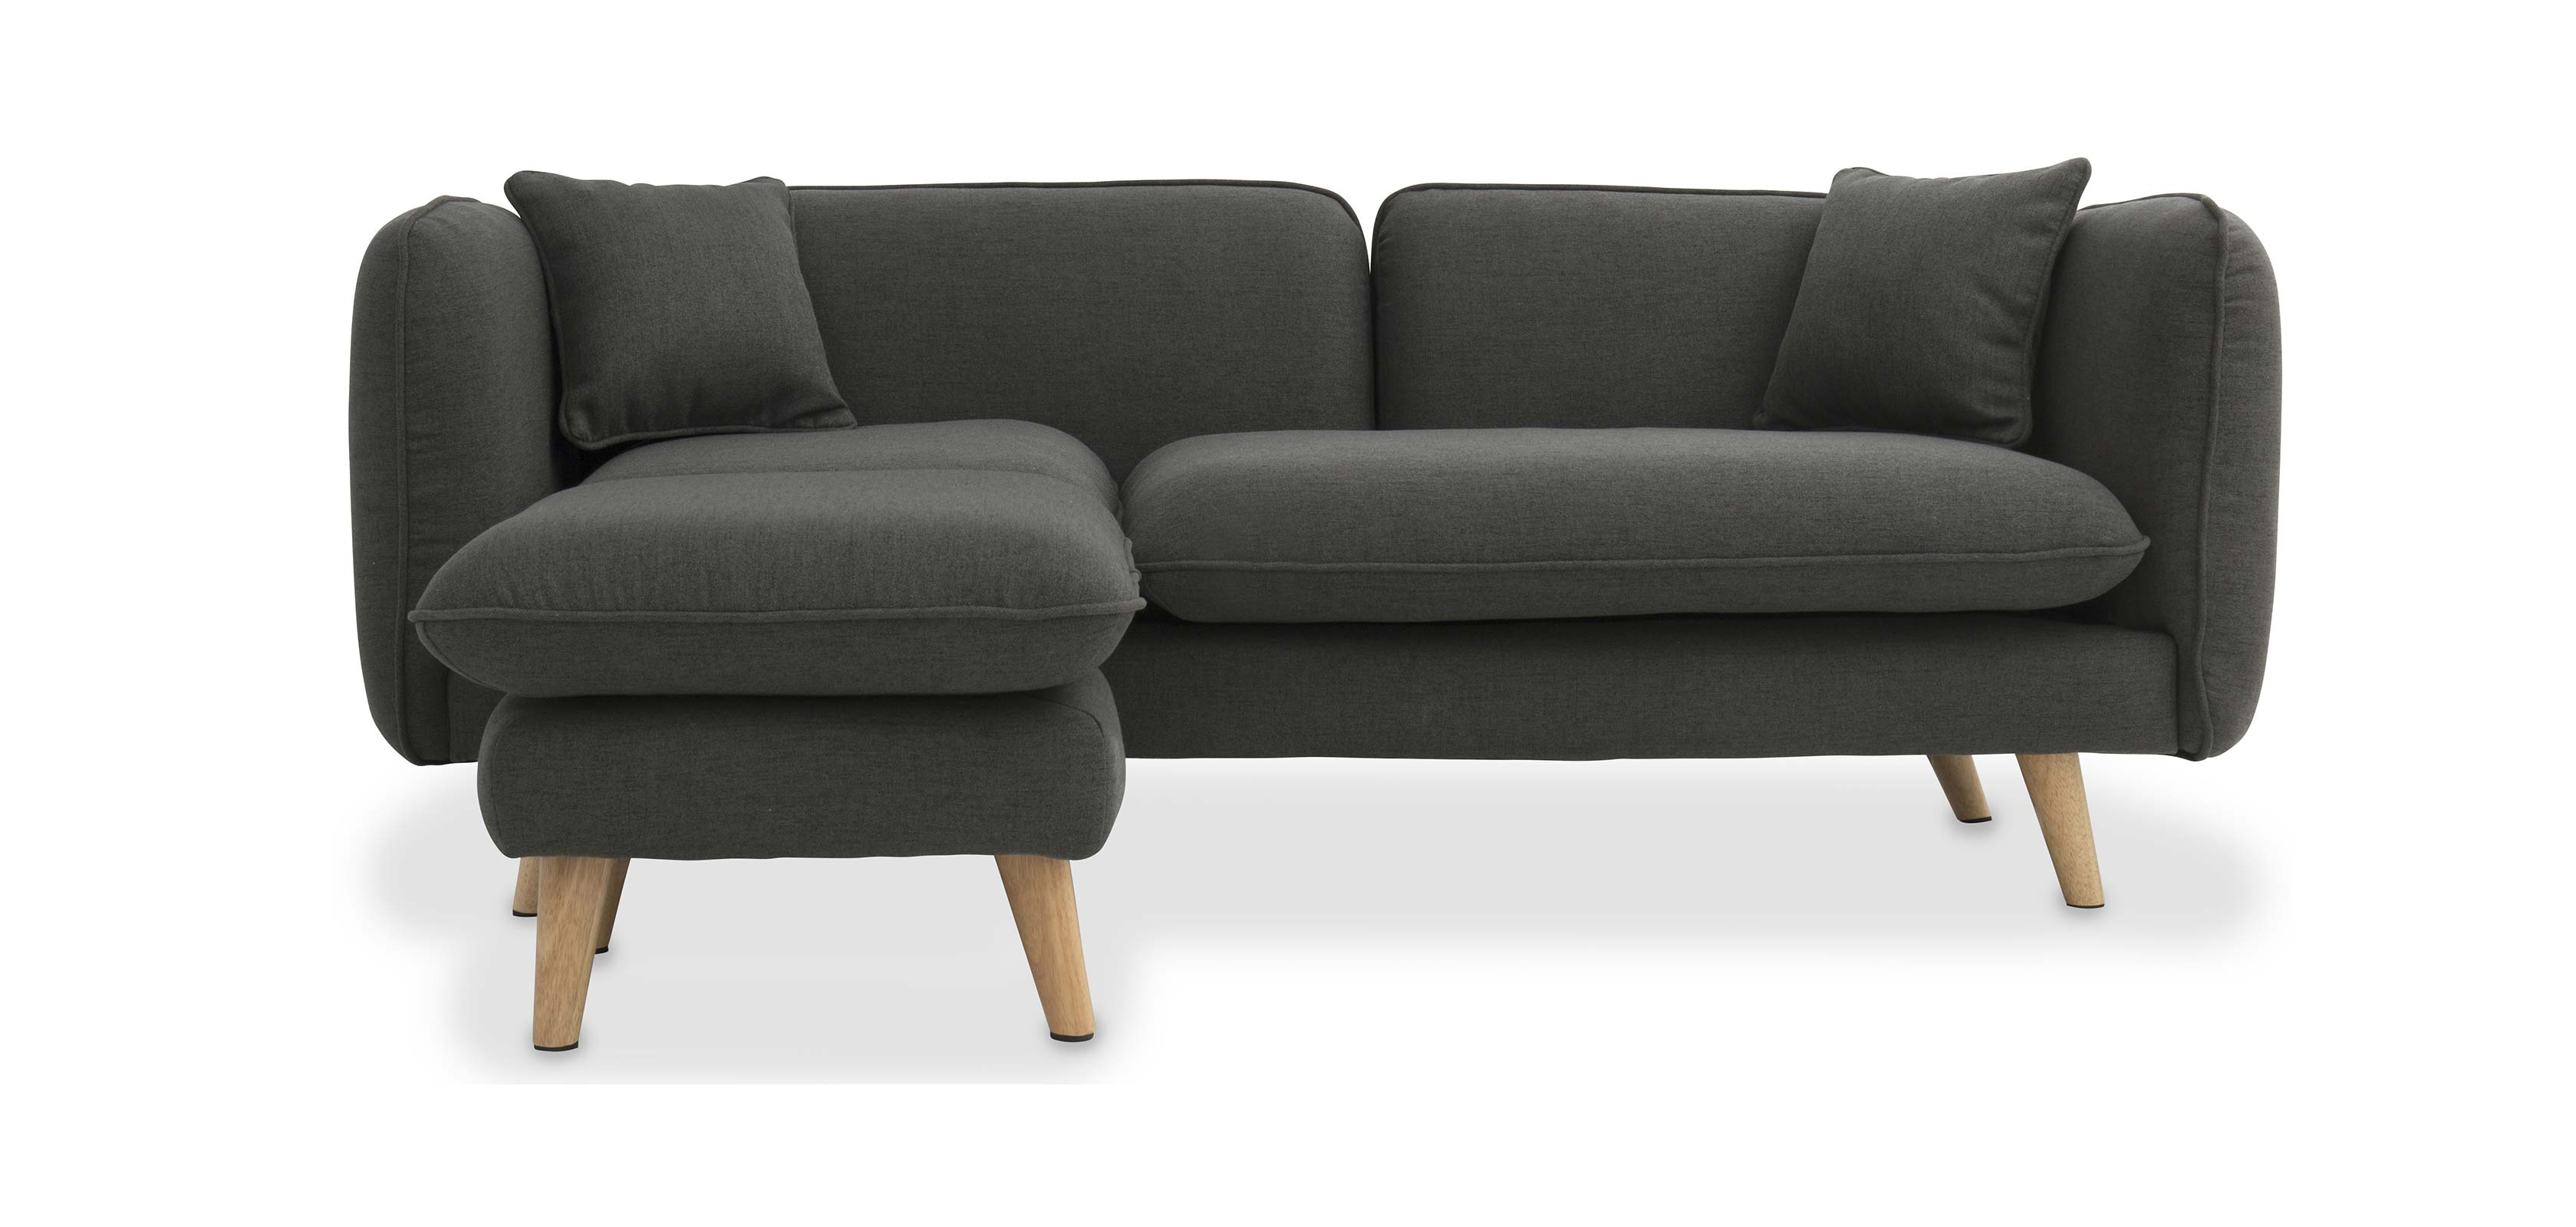 scandinavian corner sofa elm corner sofa by cor design. Black Bedroom Furniture Sets. Home Design Ideas